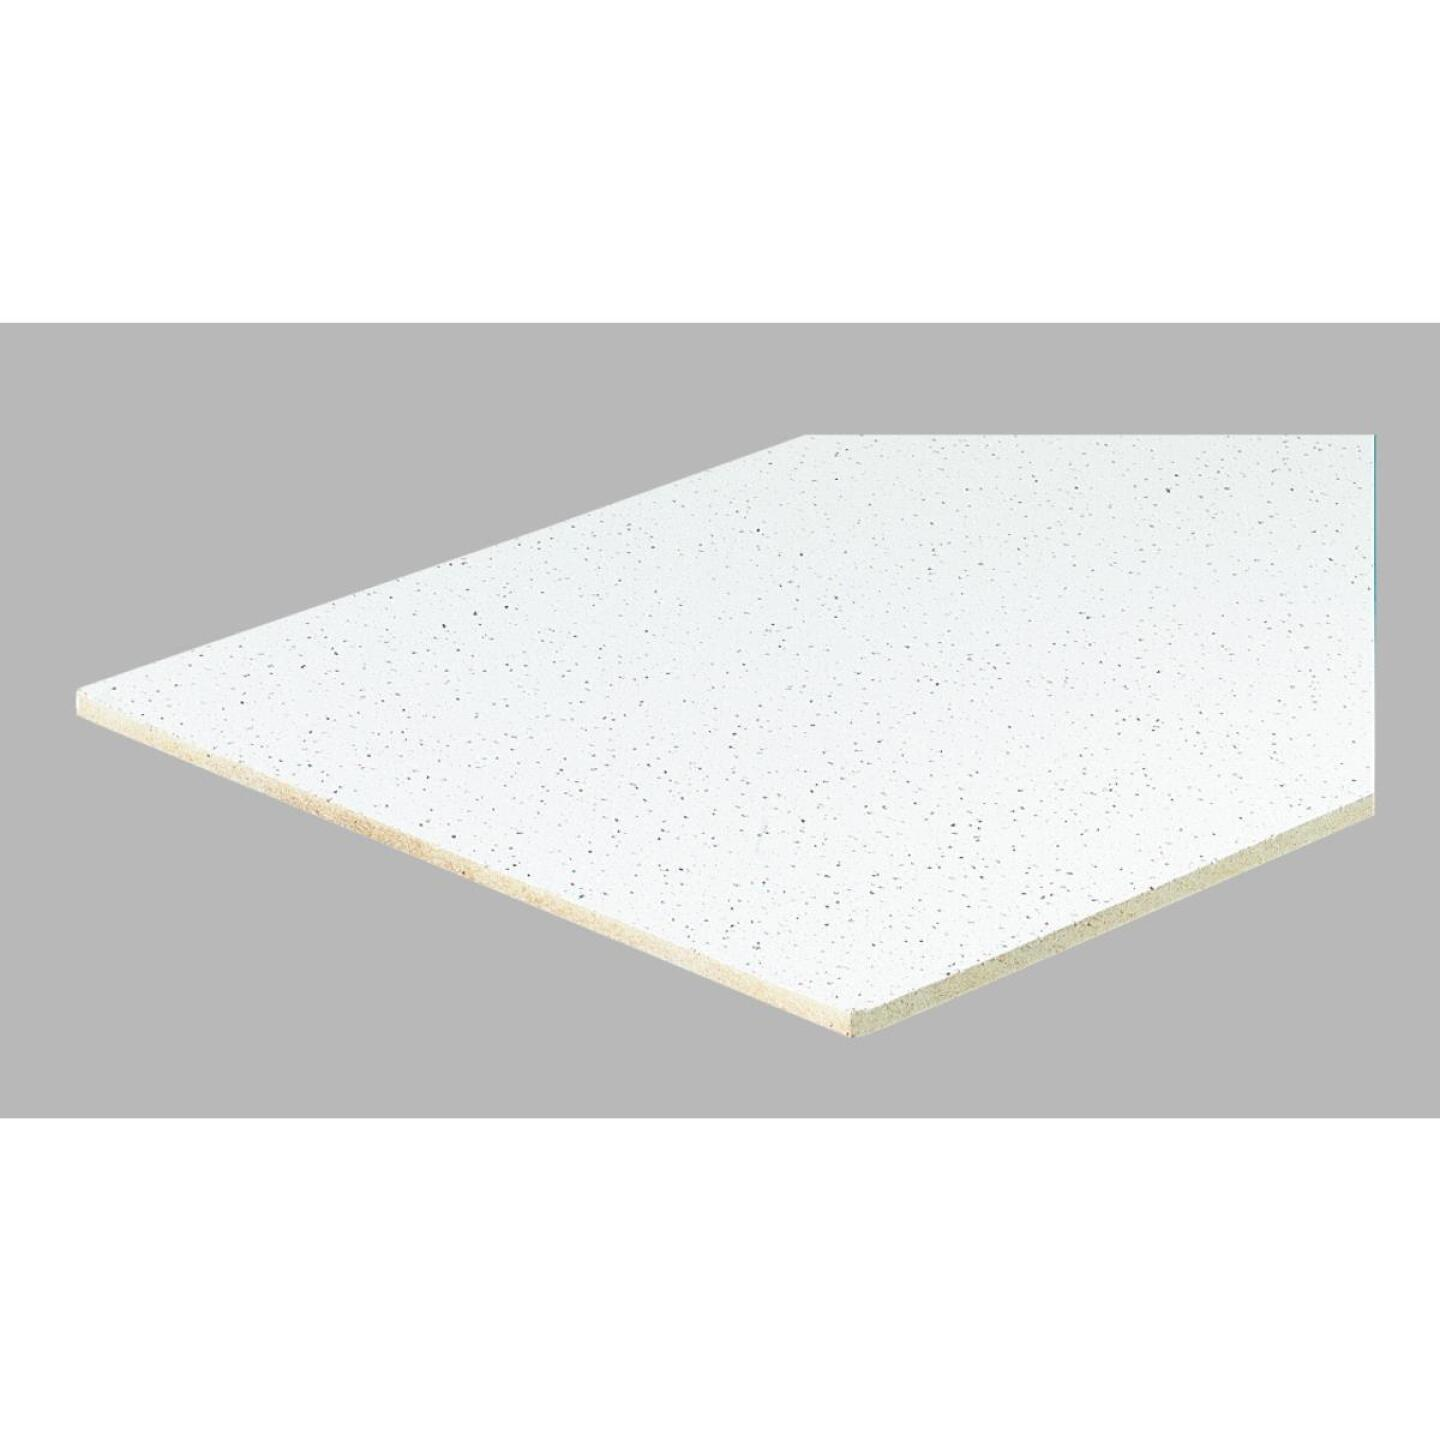 Radar Fissured 2 Ft. x 4 Ft. White Mineral Fiber Square Edge Suspended Ceiling Tile (8-Count) Image 2